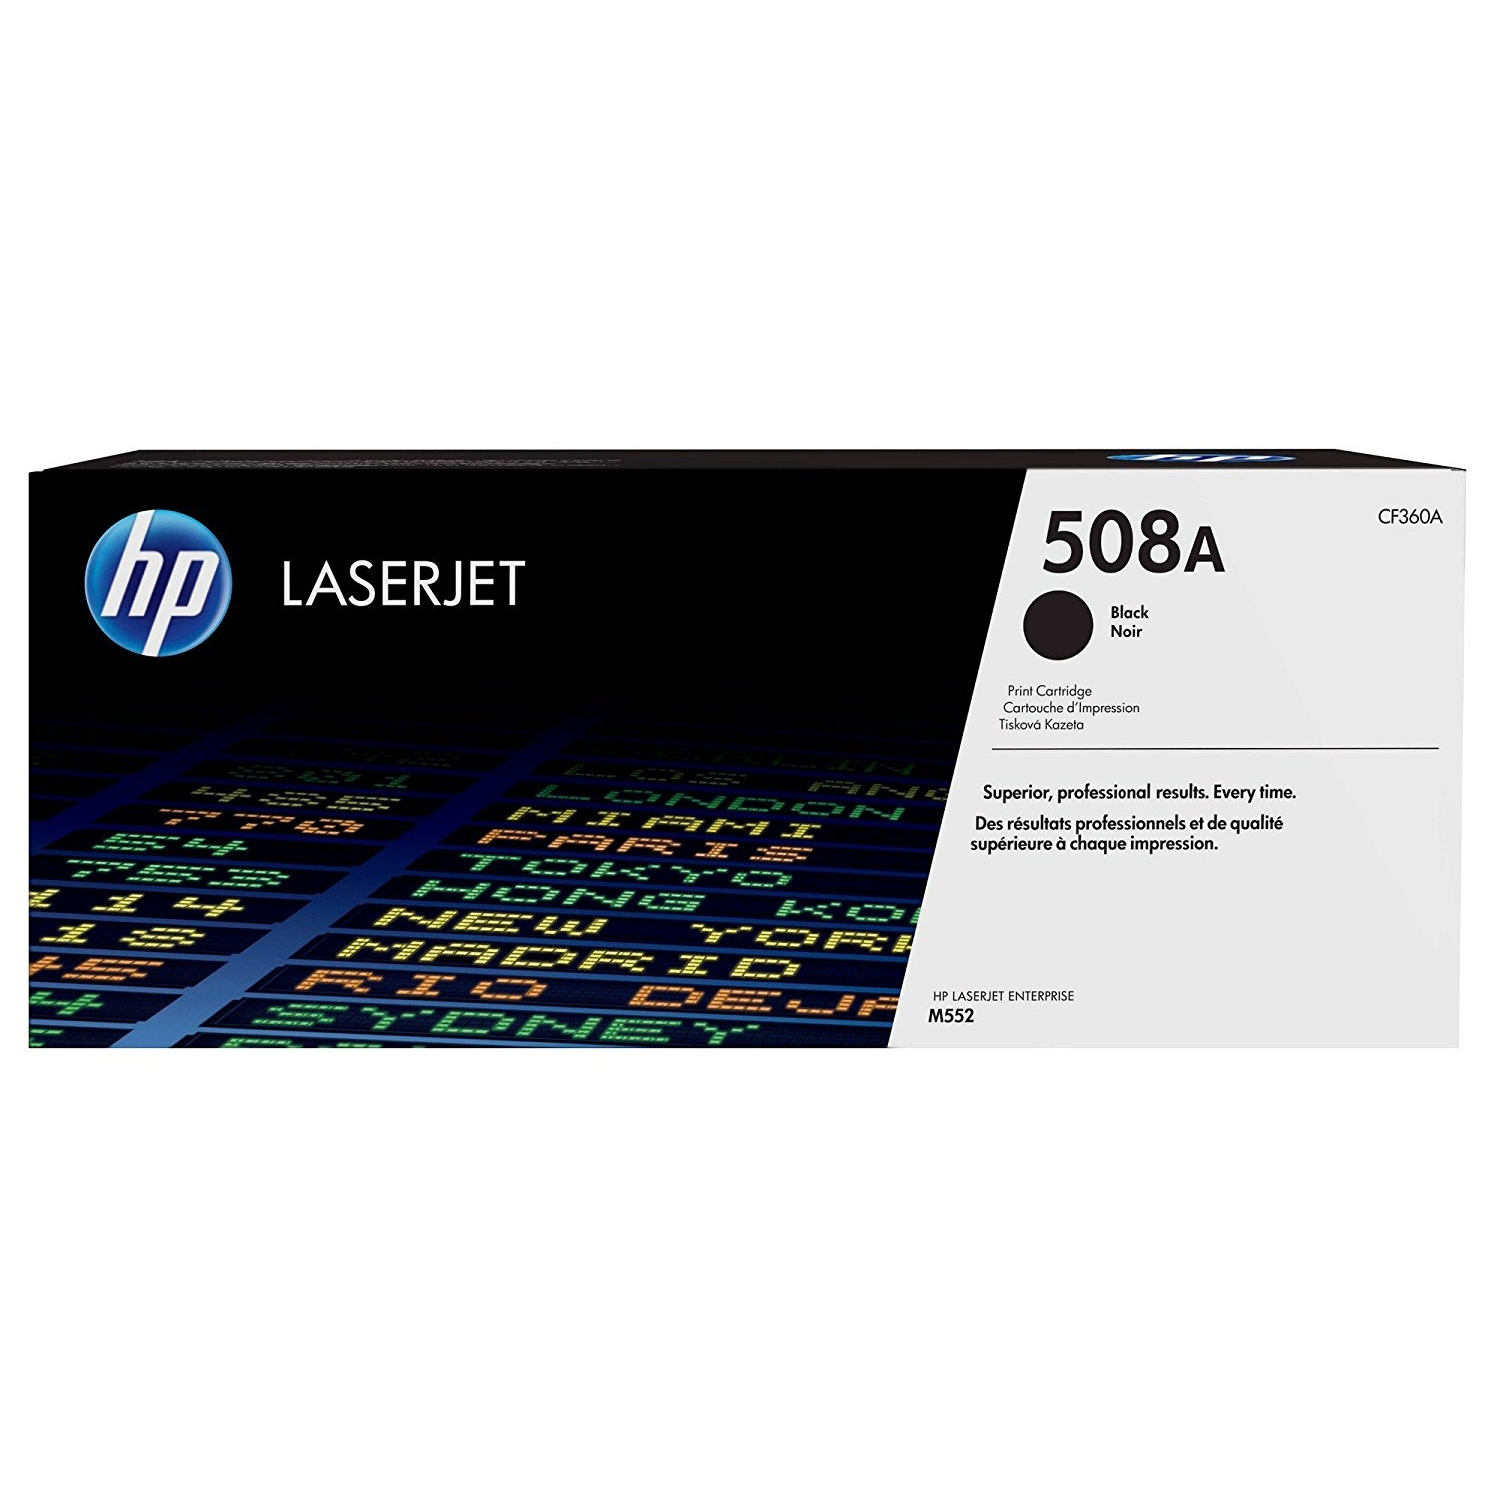 Original HP 508A Black Toner Cartridge (CF360A)